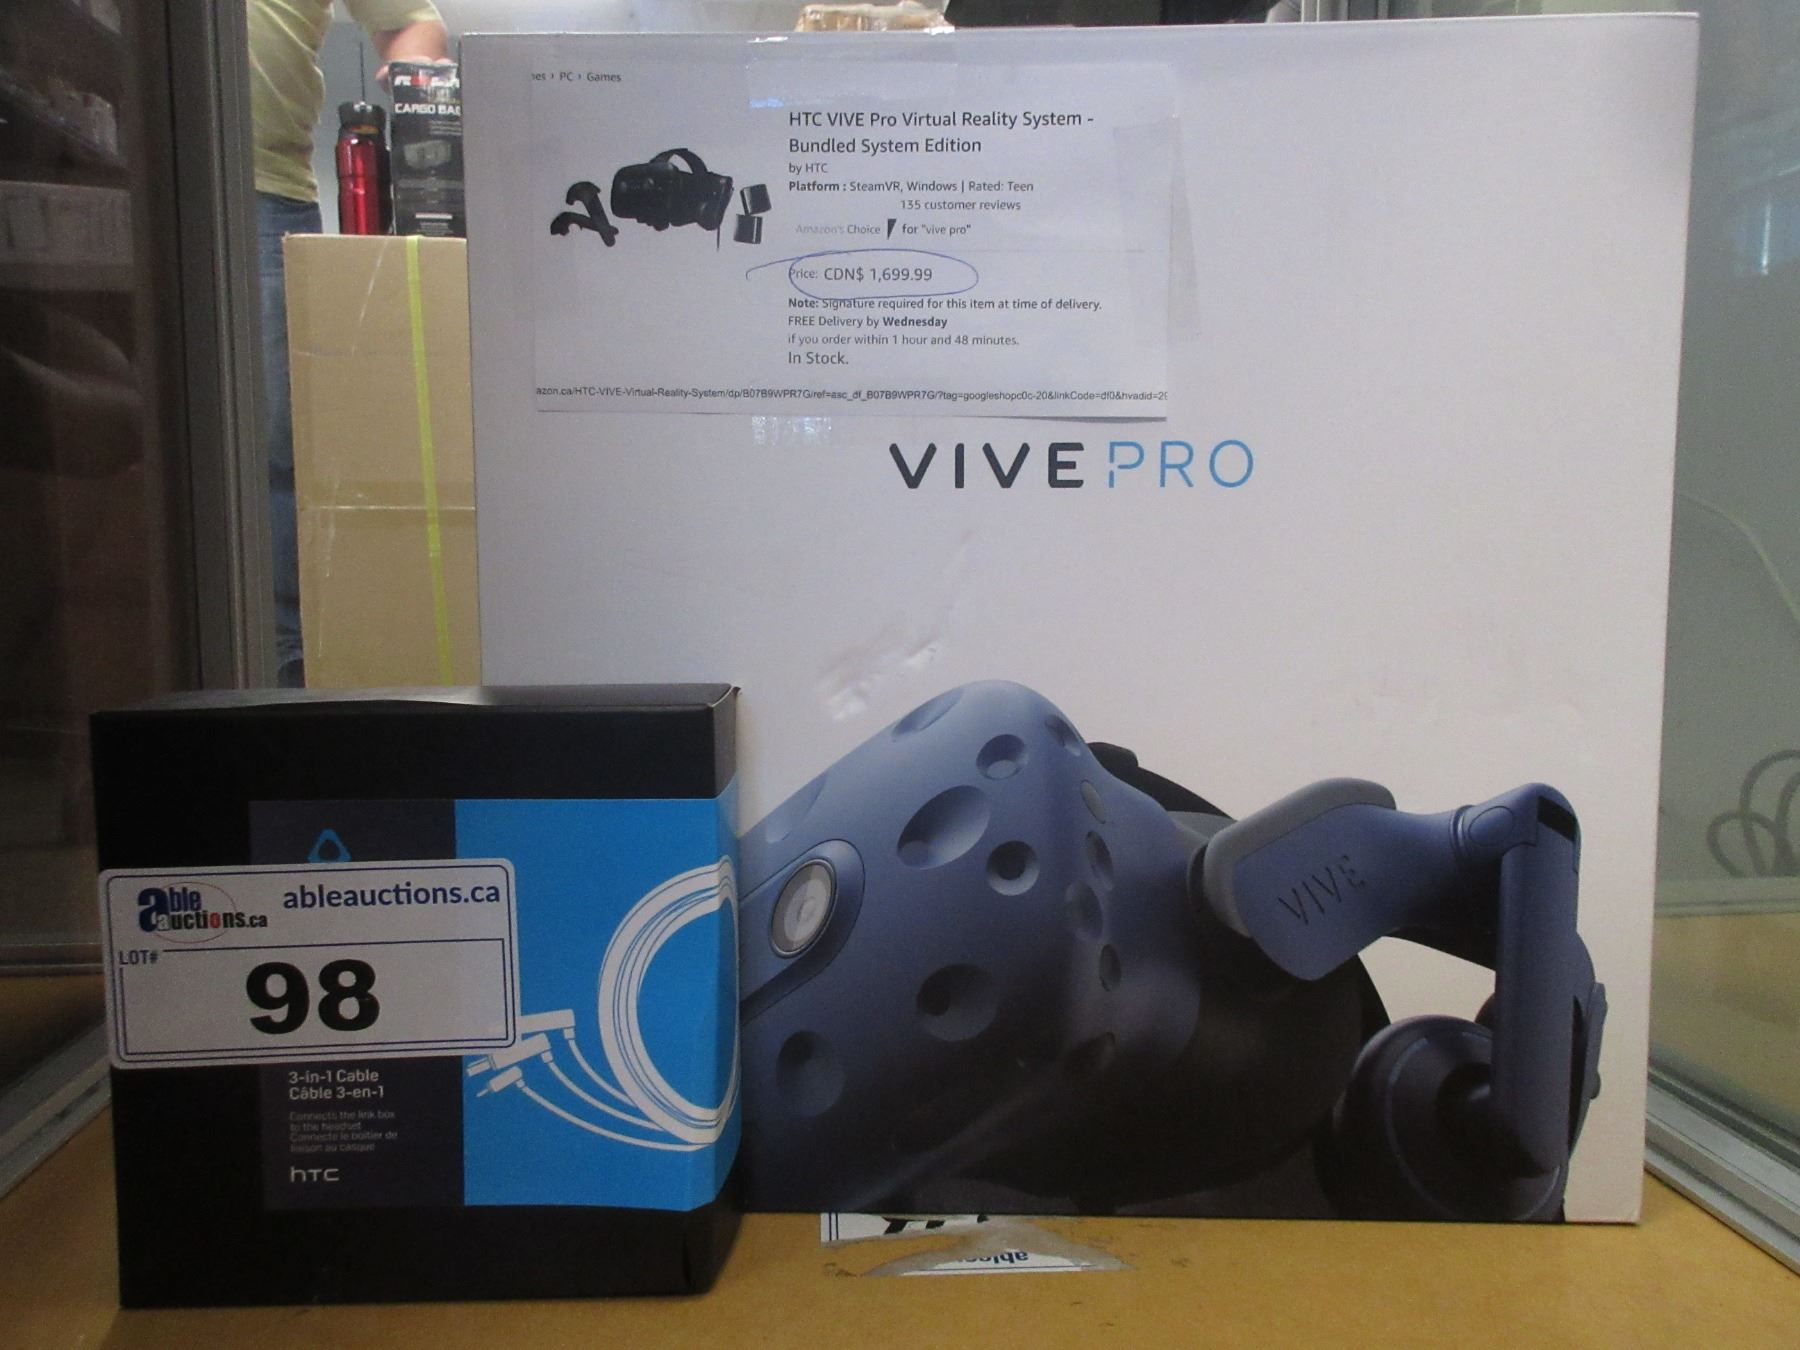 HTC VIVE PRO VIRTUAL REALITY BUNDLE SYSTEM